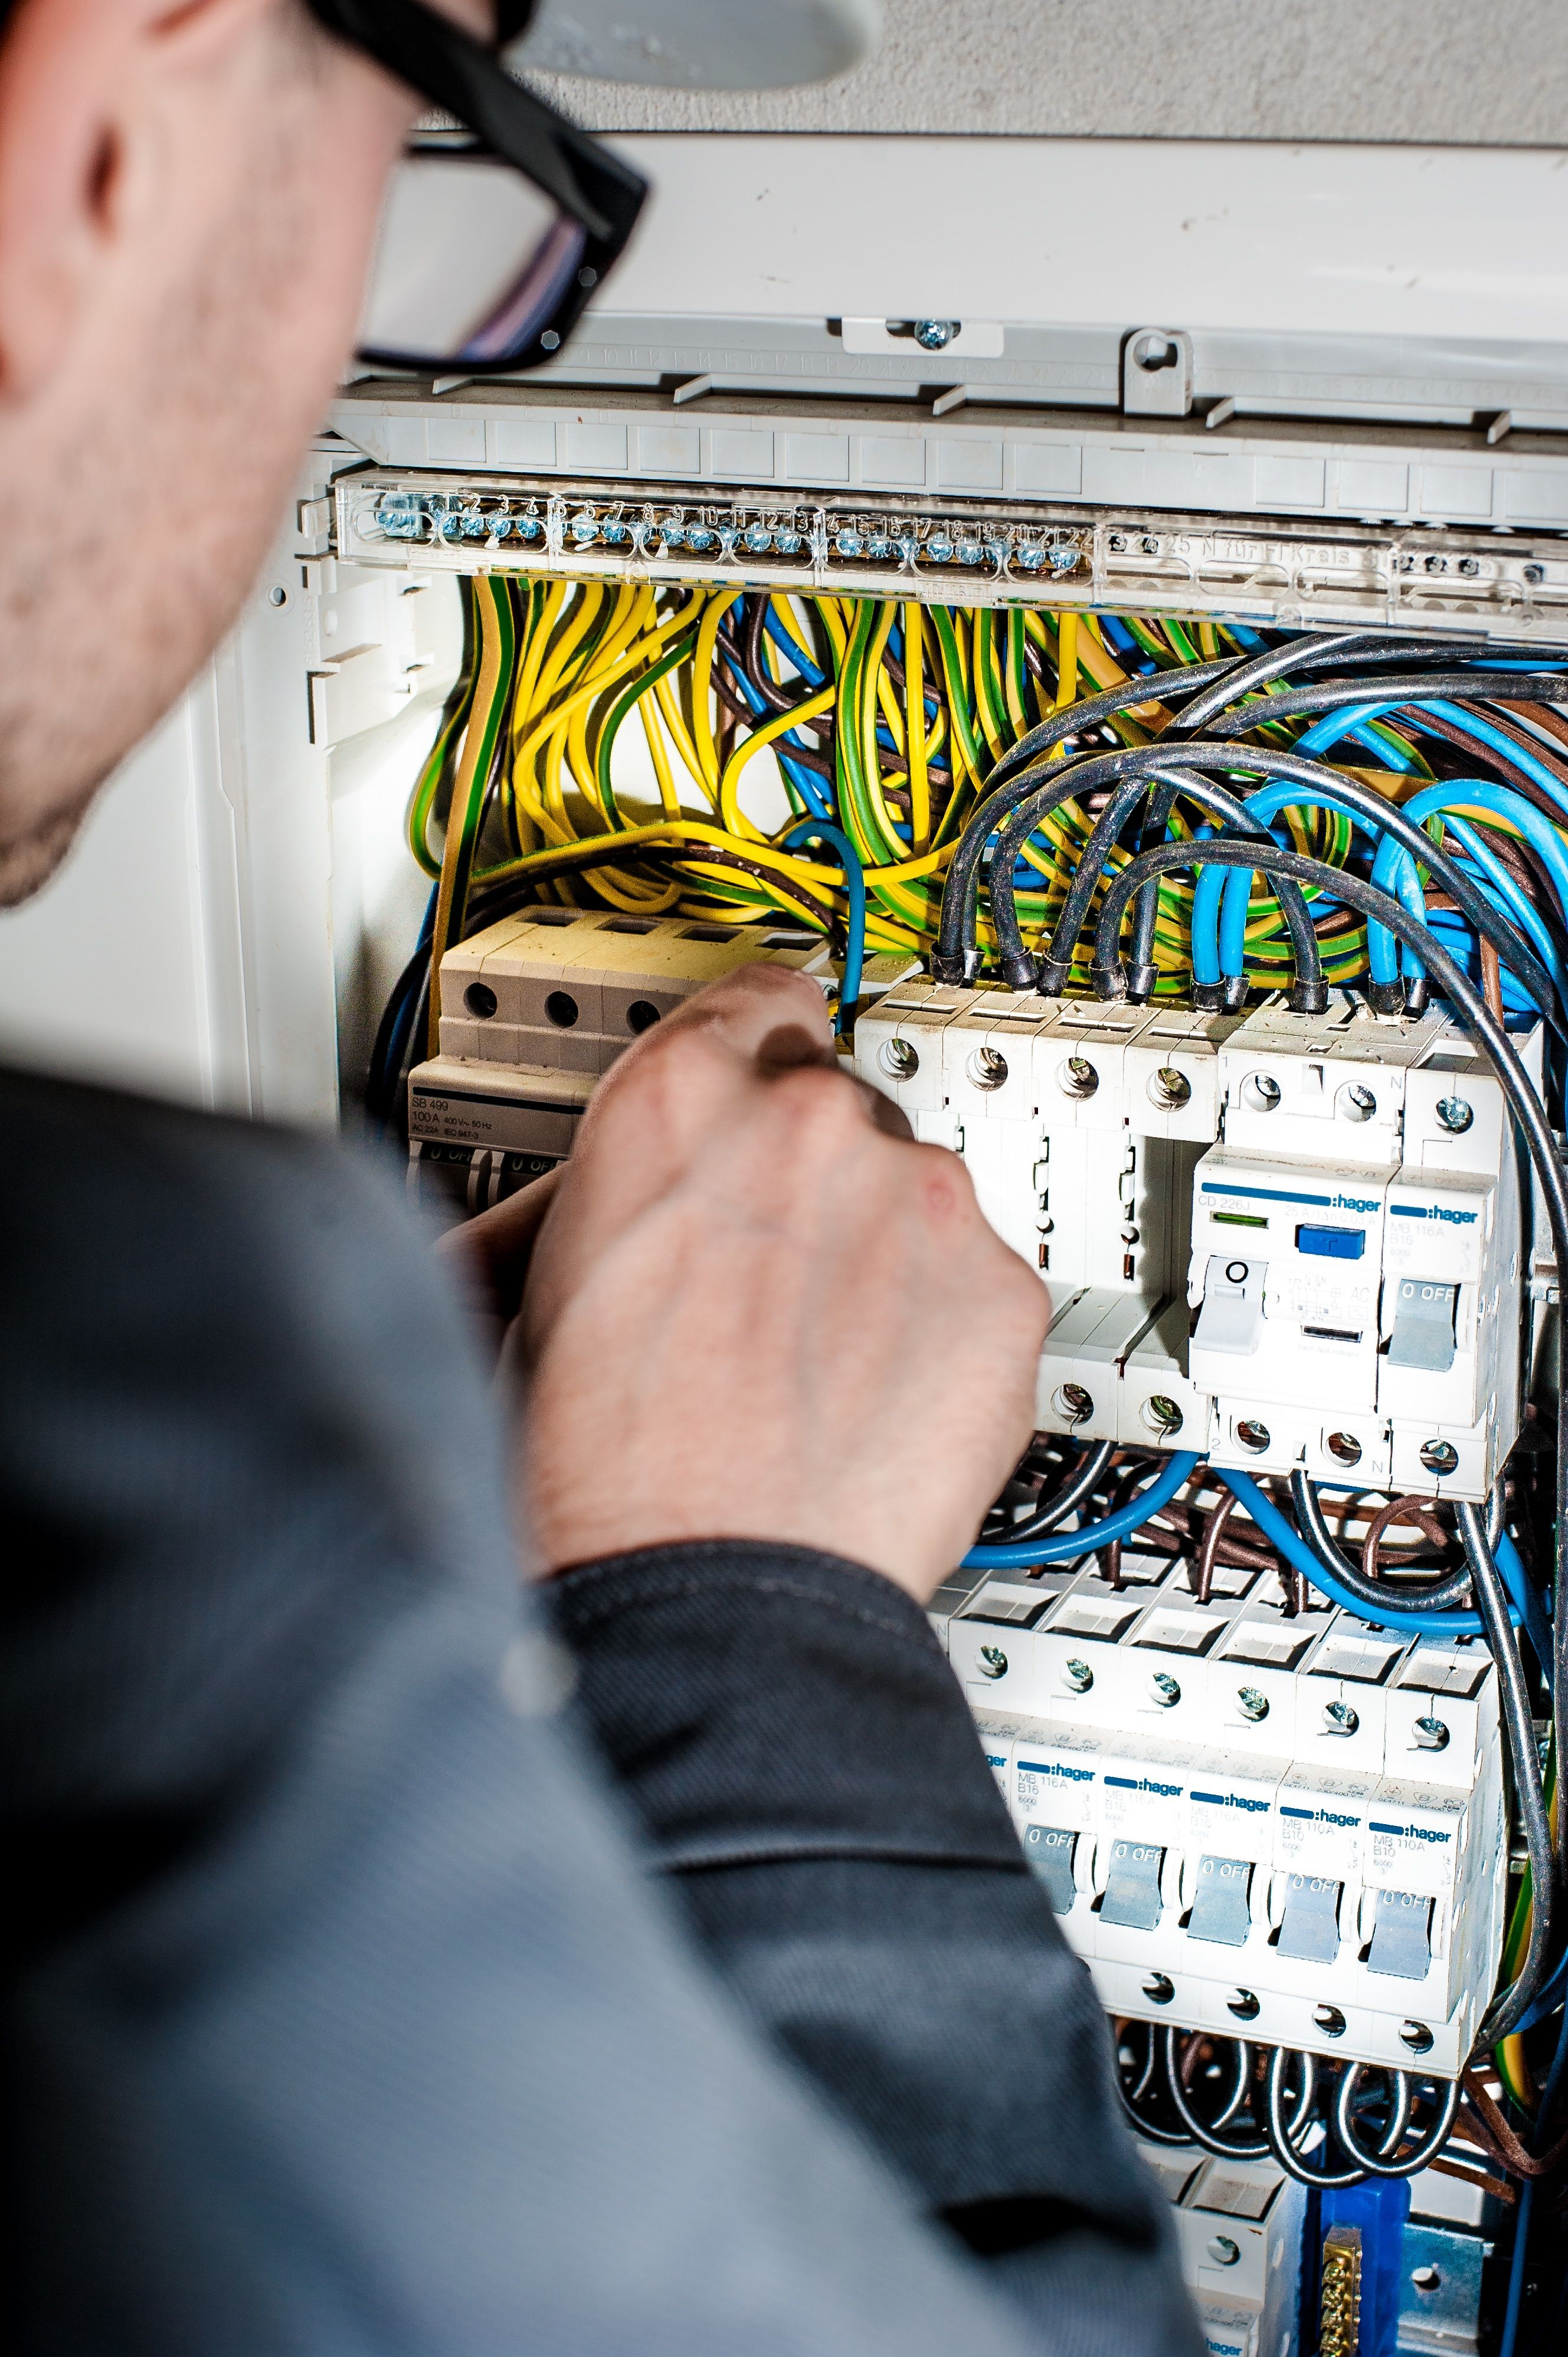 The Electrical Panel And Circuit Breaker Configuration Should Be Adequate For The Need Electrical Problems Electrical Safety Commercial Electrical Contractors